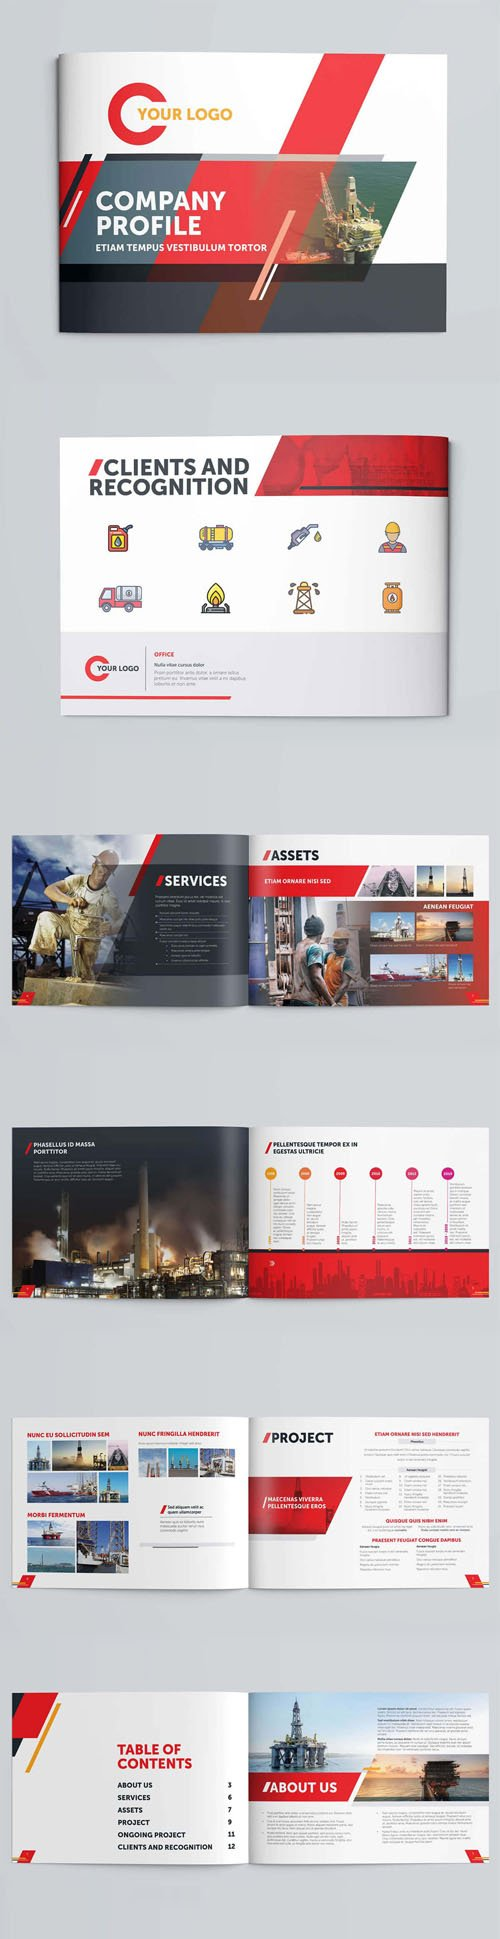 Industrial Company Profile Booklet Indesign Template